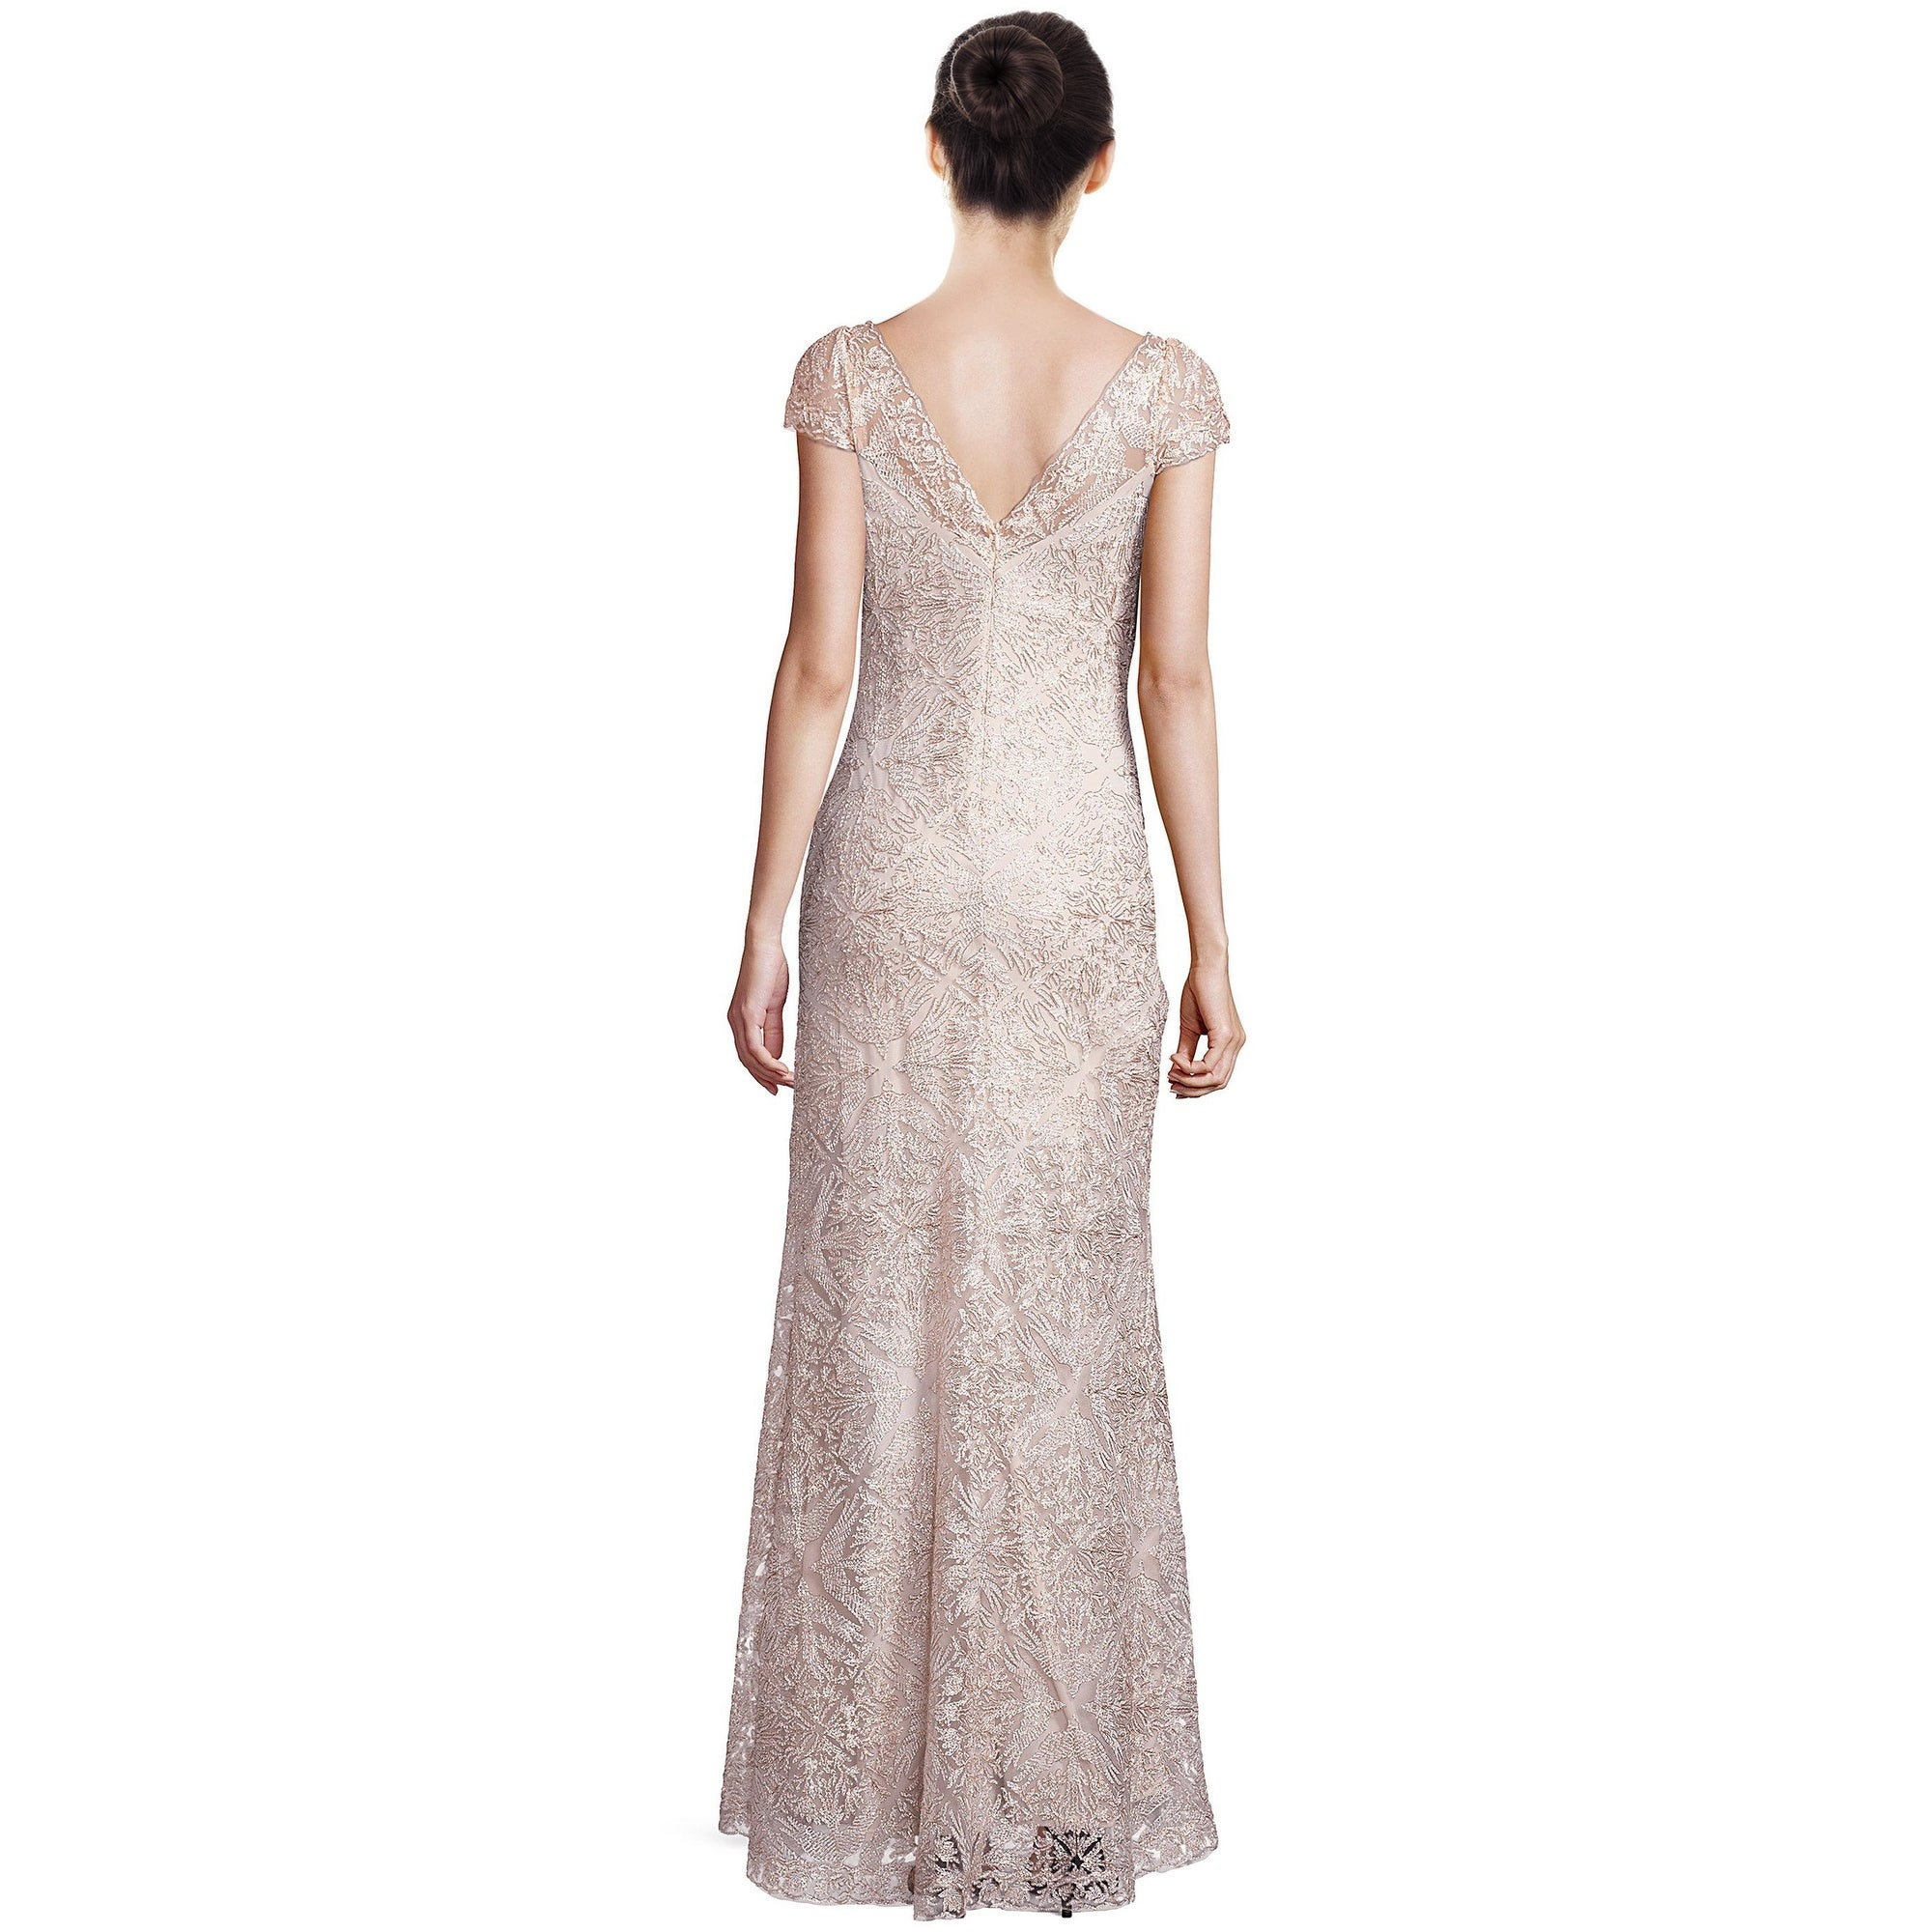 Shop Tadashi Shoji Corded Lace Embellished Cap Sleeve Evening Gown ...